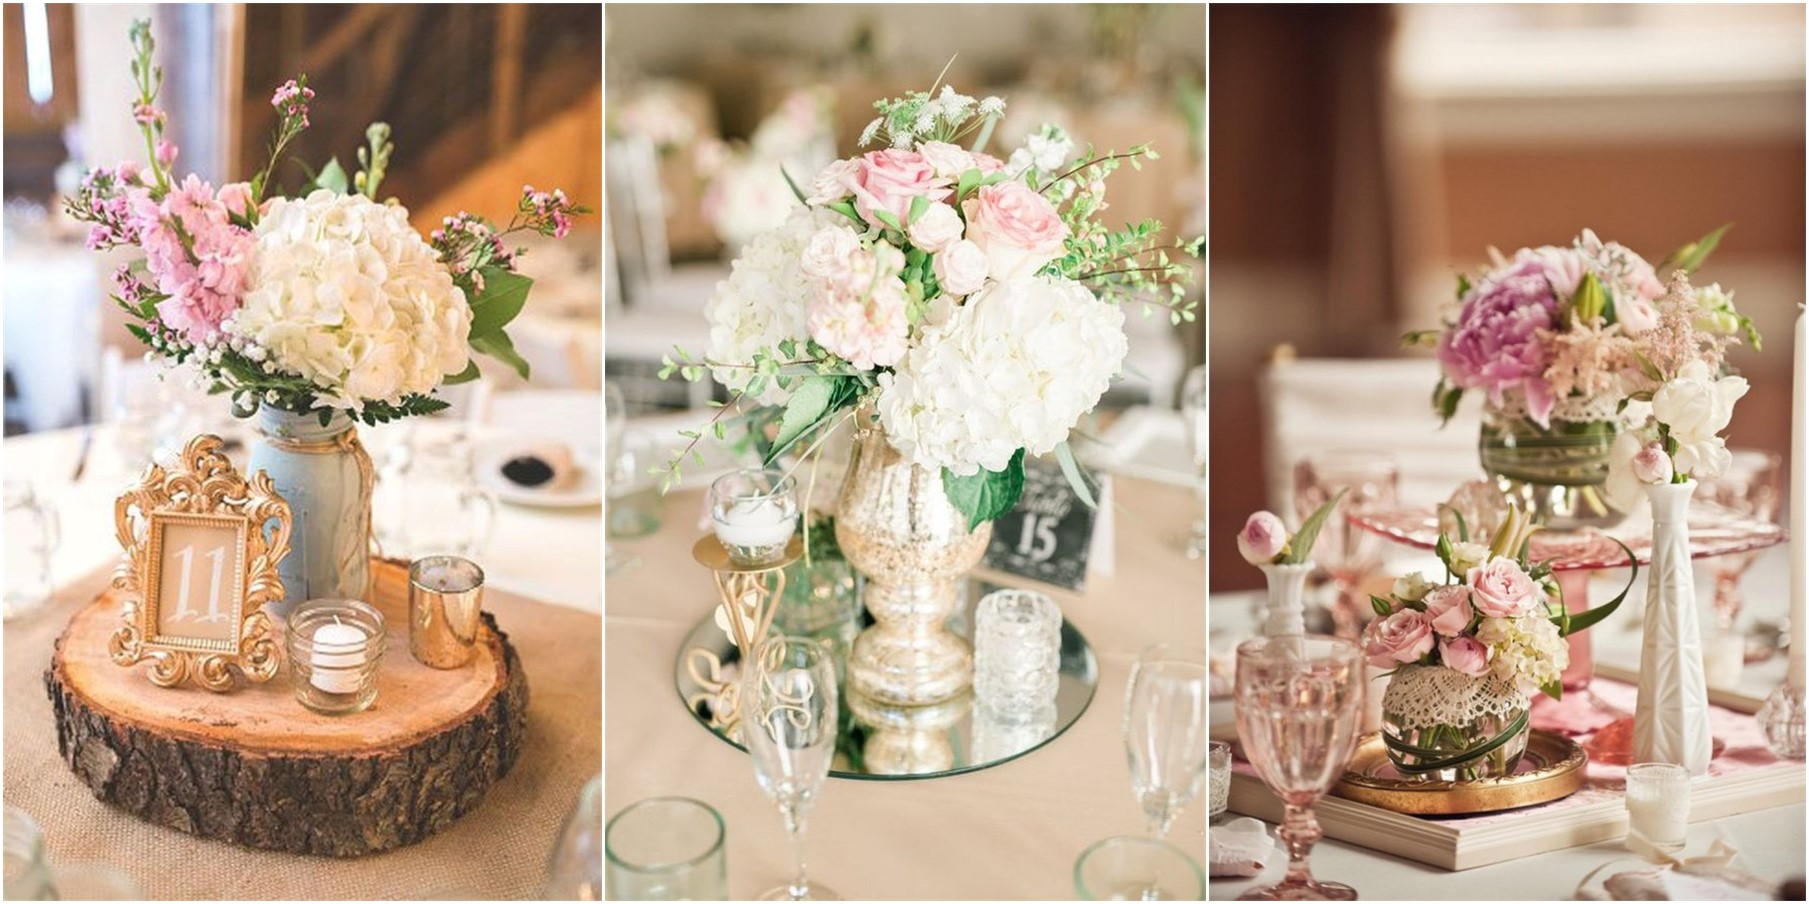 Vintage wedding centerpieces that take your to